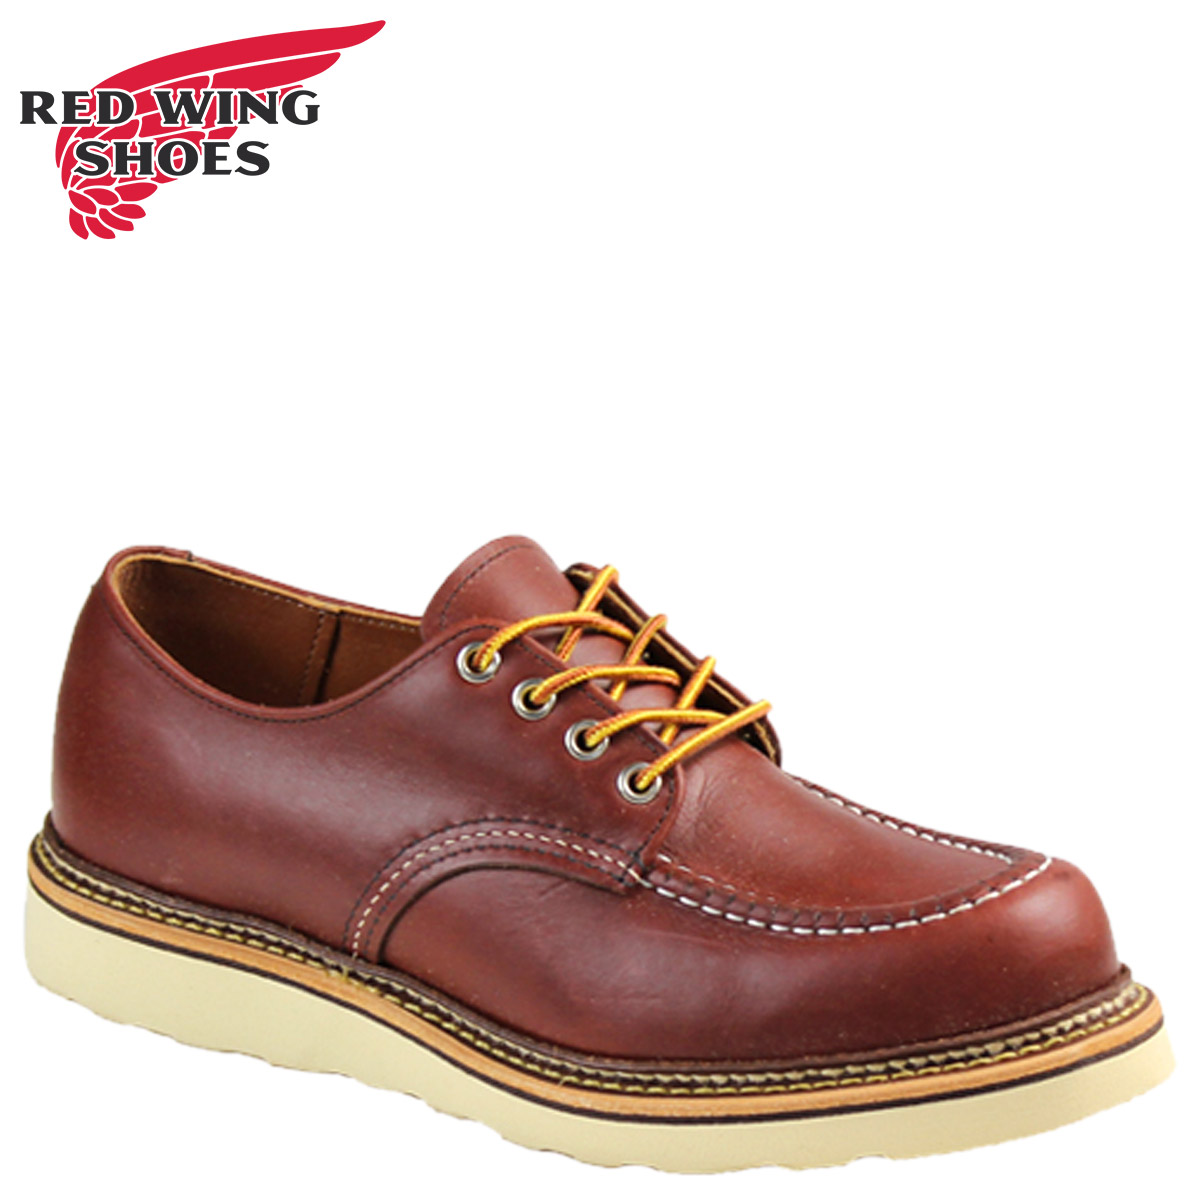 Sugar Online Shop | Rakuten Global Market: Redwing RED WING Oxford Shoes  8099 OXFORD SHOES D wise leather mens Made in USA Red Wing Oxford Shoes mock